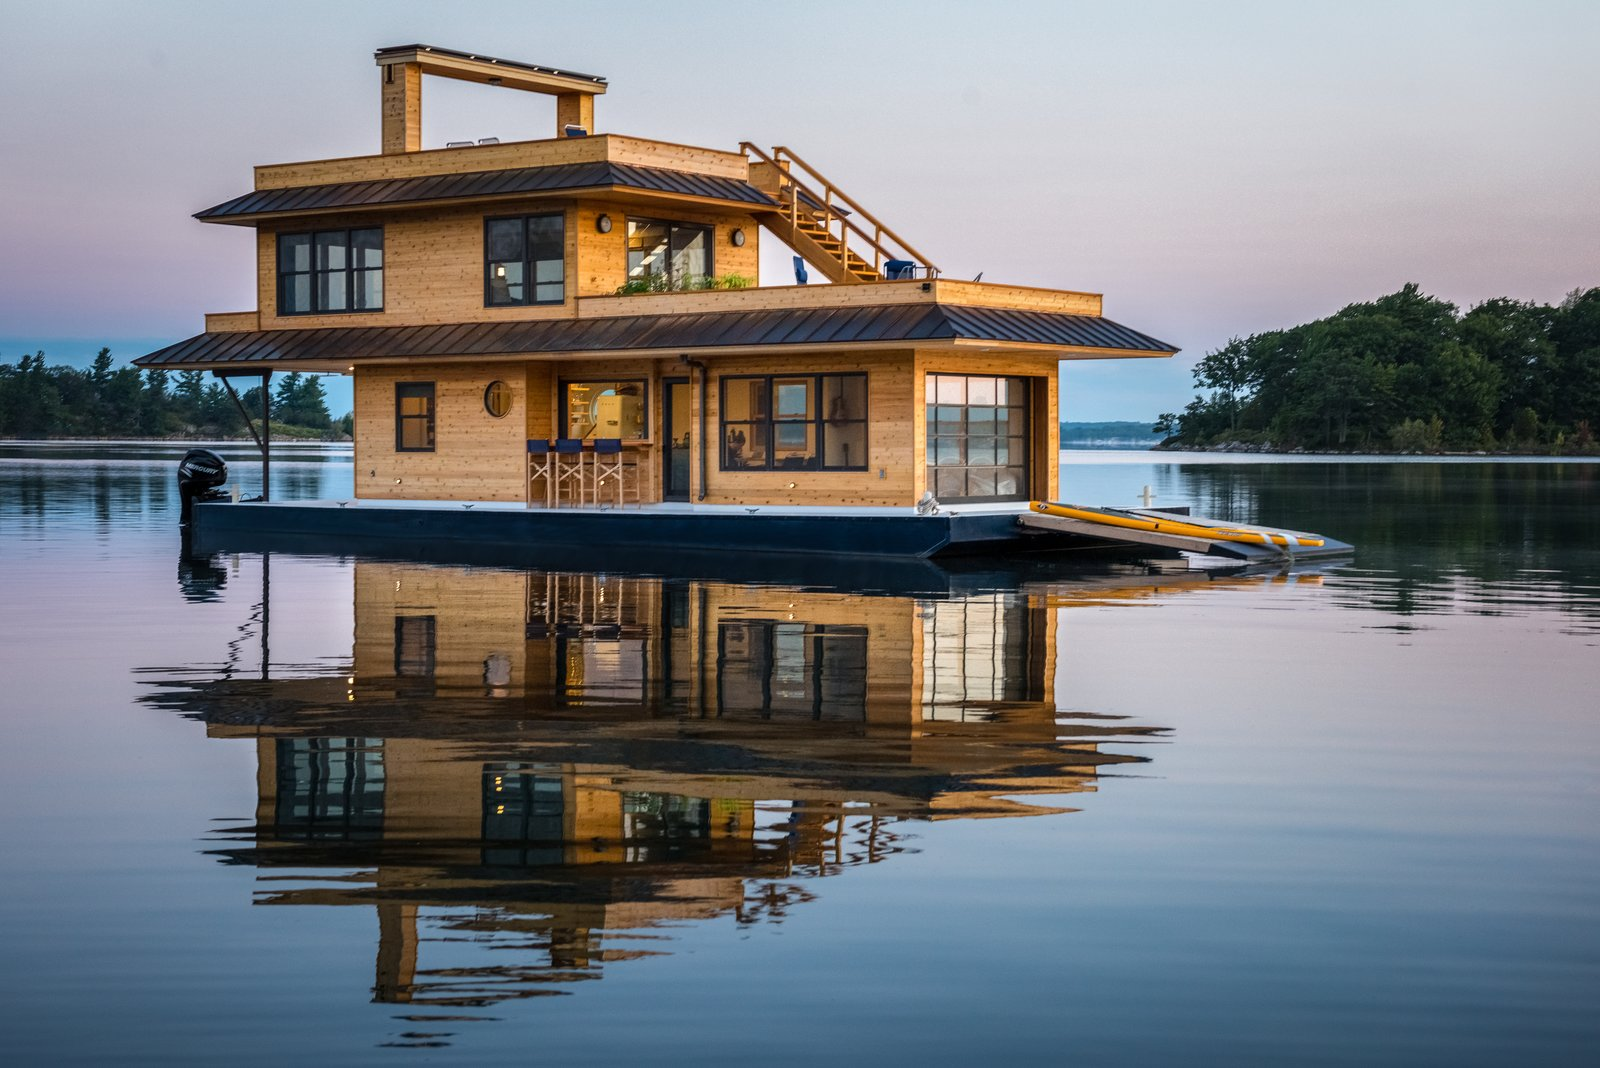 The Barge Yacht